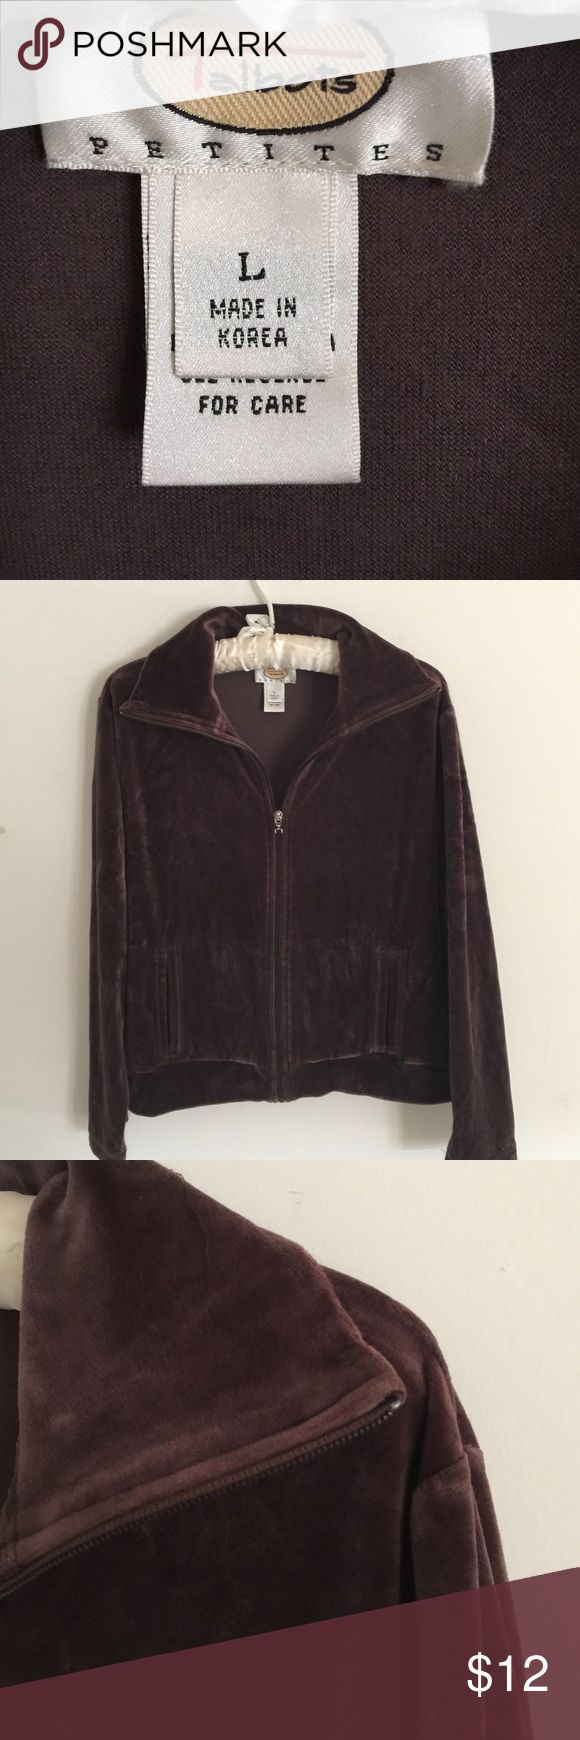 Talbots -petite:  Chocolate brown velvet zip-up! Talbots -petite:  Soft and warm, this jacket is made with the quality that only Talbots can do.  Wear this great jacket for workouts or everyday wear, you simply can't go wrong! Talbots  Jackets & Coats